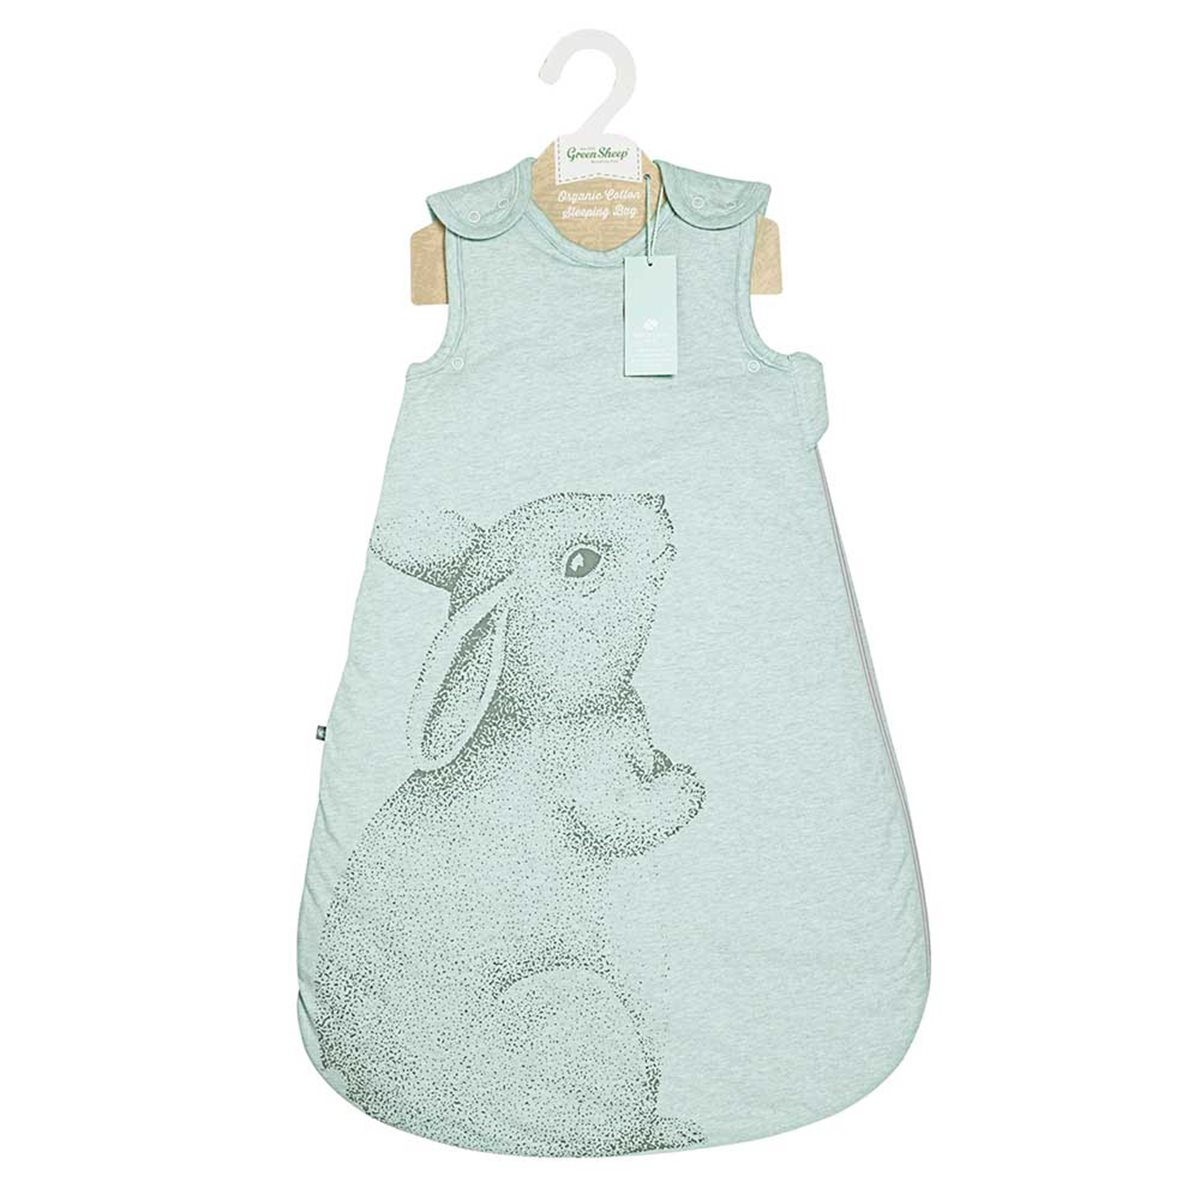 6b0ce8de9e4c ... Wild Cotton Organic Sleeping Bag 2.5 Tog - Rabbit ...